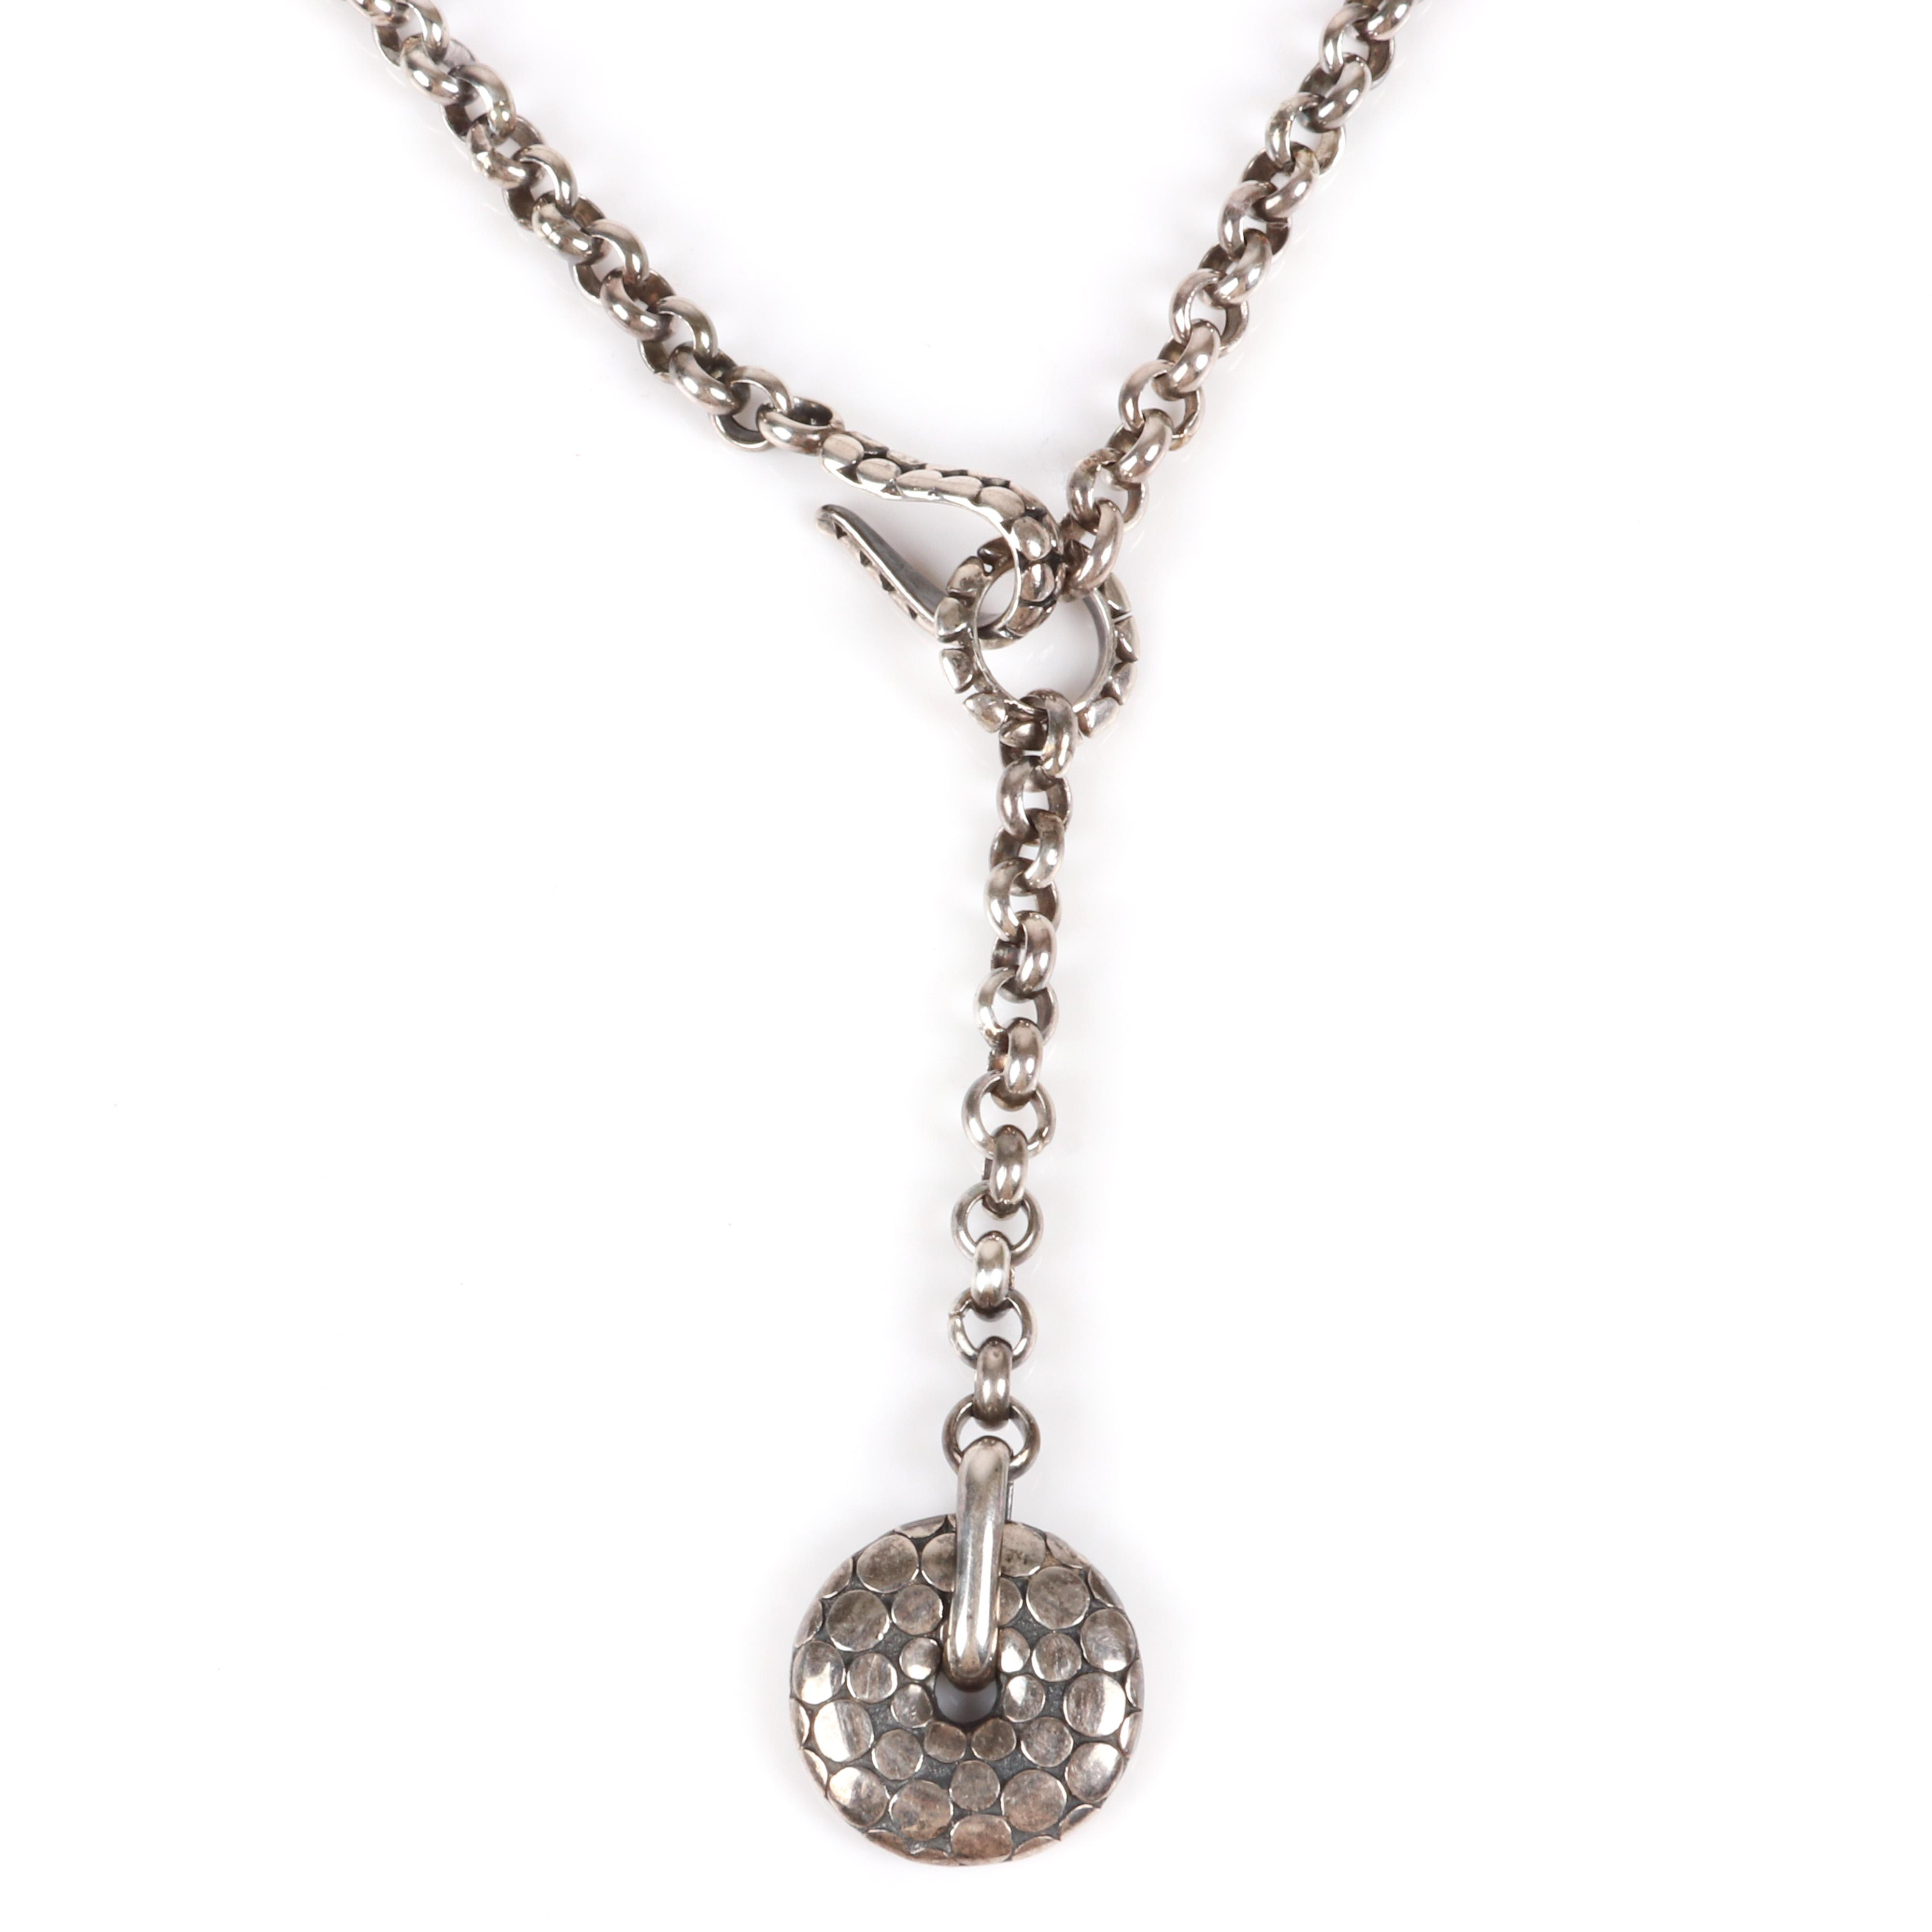 "John Hardy style Bali sterling silver lariat linked drop necklace with suspended dot disk pendant. 17""L (necklace), 3 1/2""L (pendant drop)"